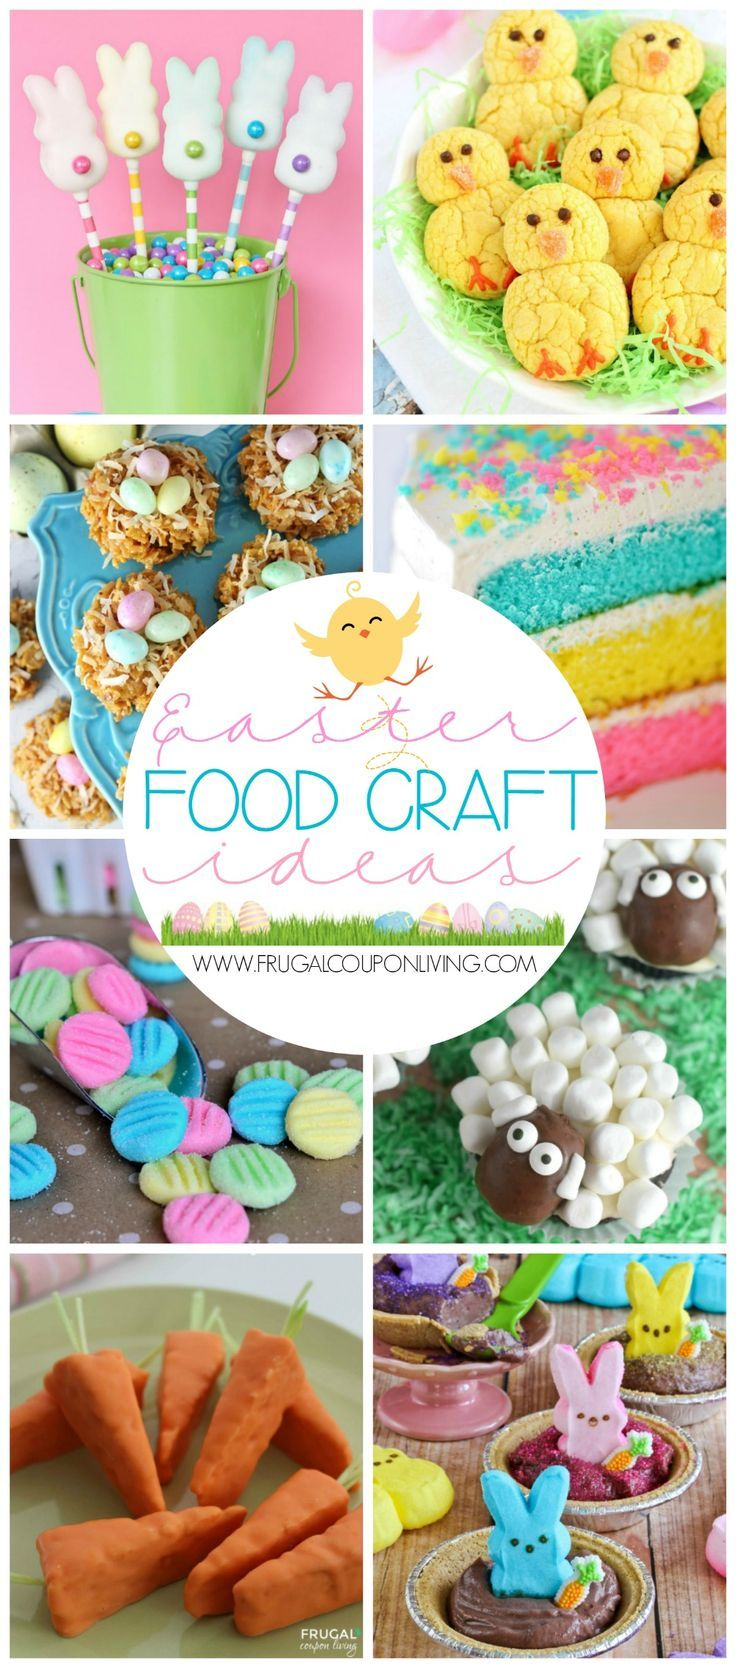 Easter Food Craft Ideas for the Kids including Chick Recipes, Sheep Cupcakes, Peeps Recipes and More.